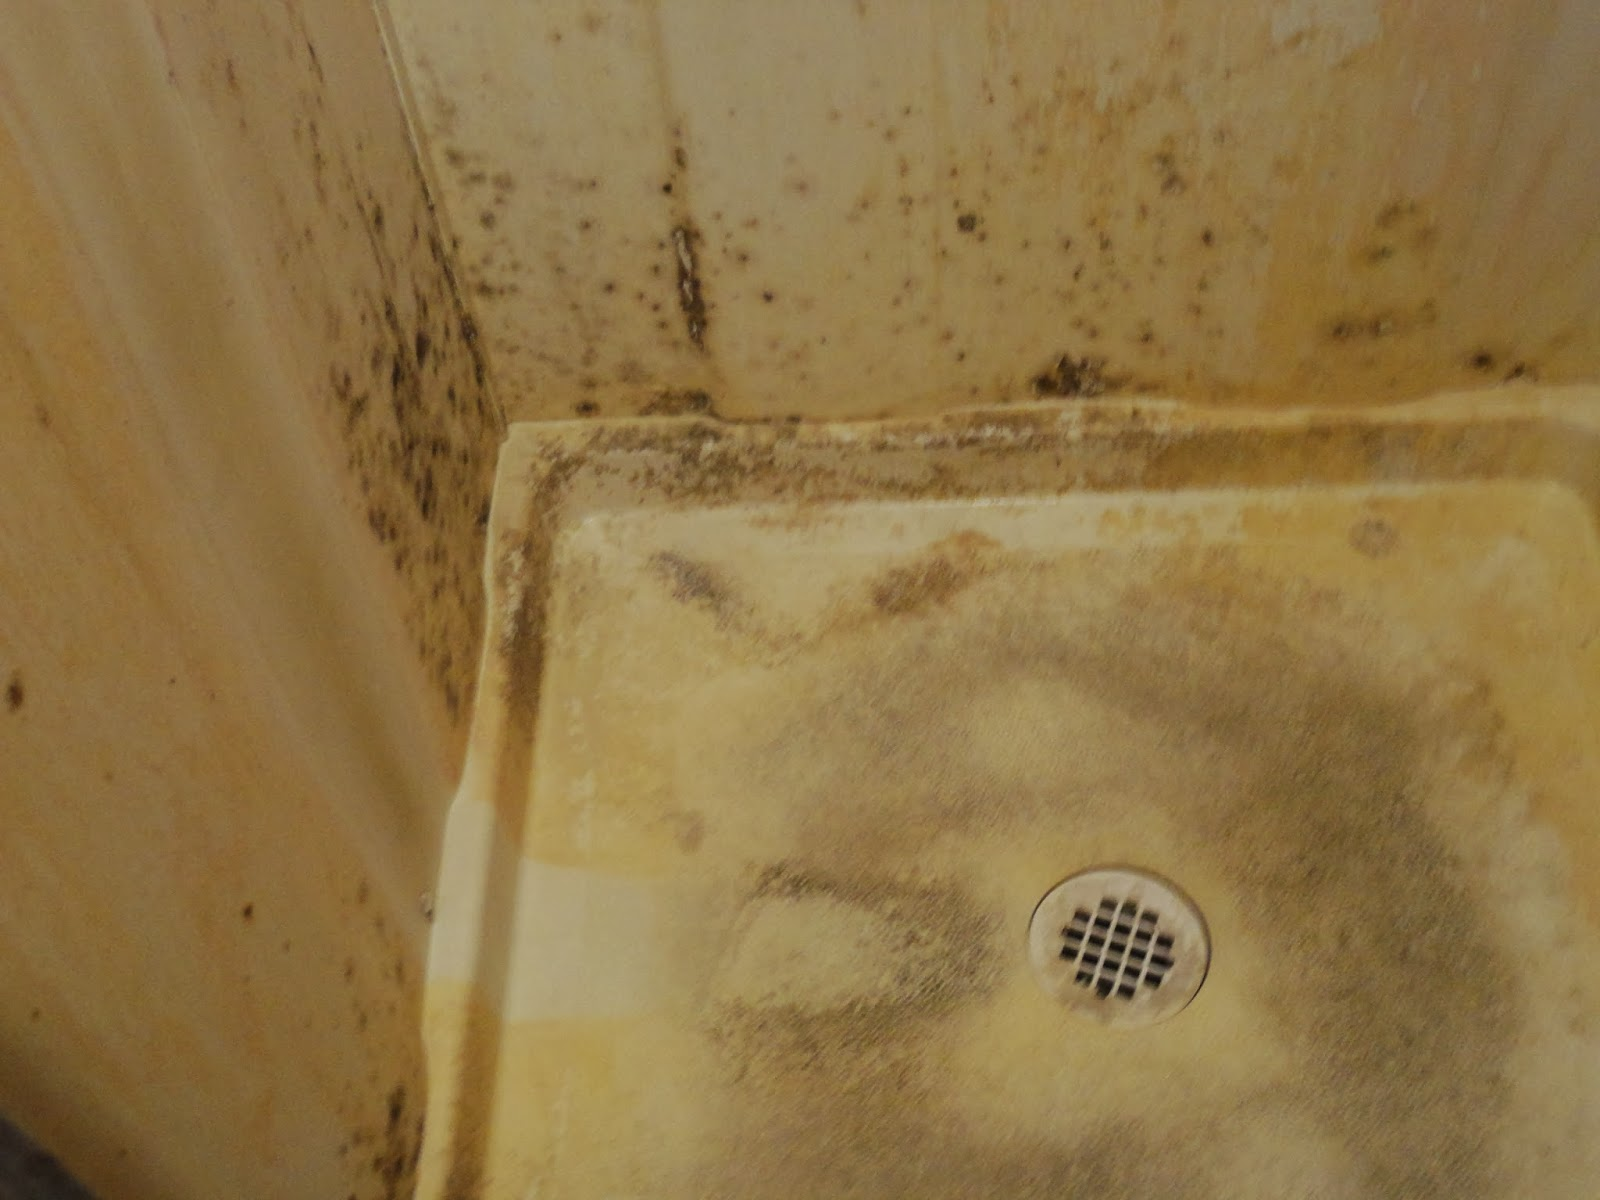 Mold removal diy tips information and more - How to clean black mold in bathroom ...